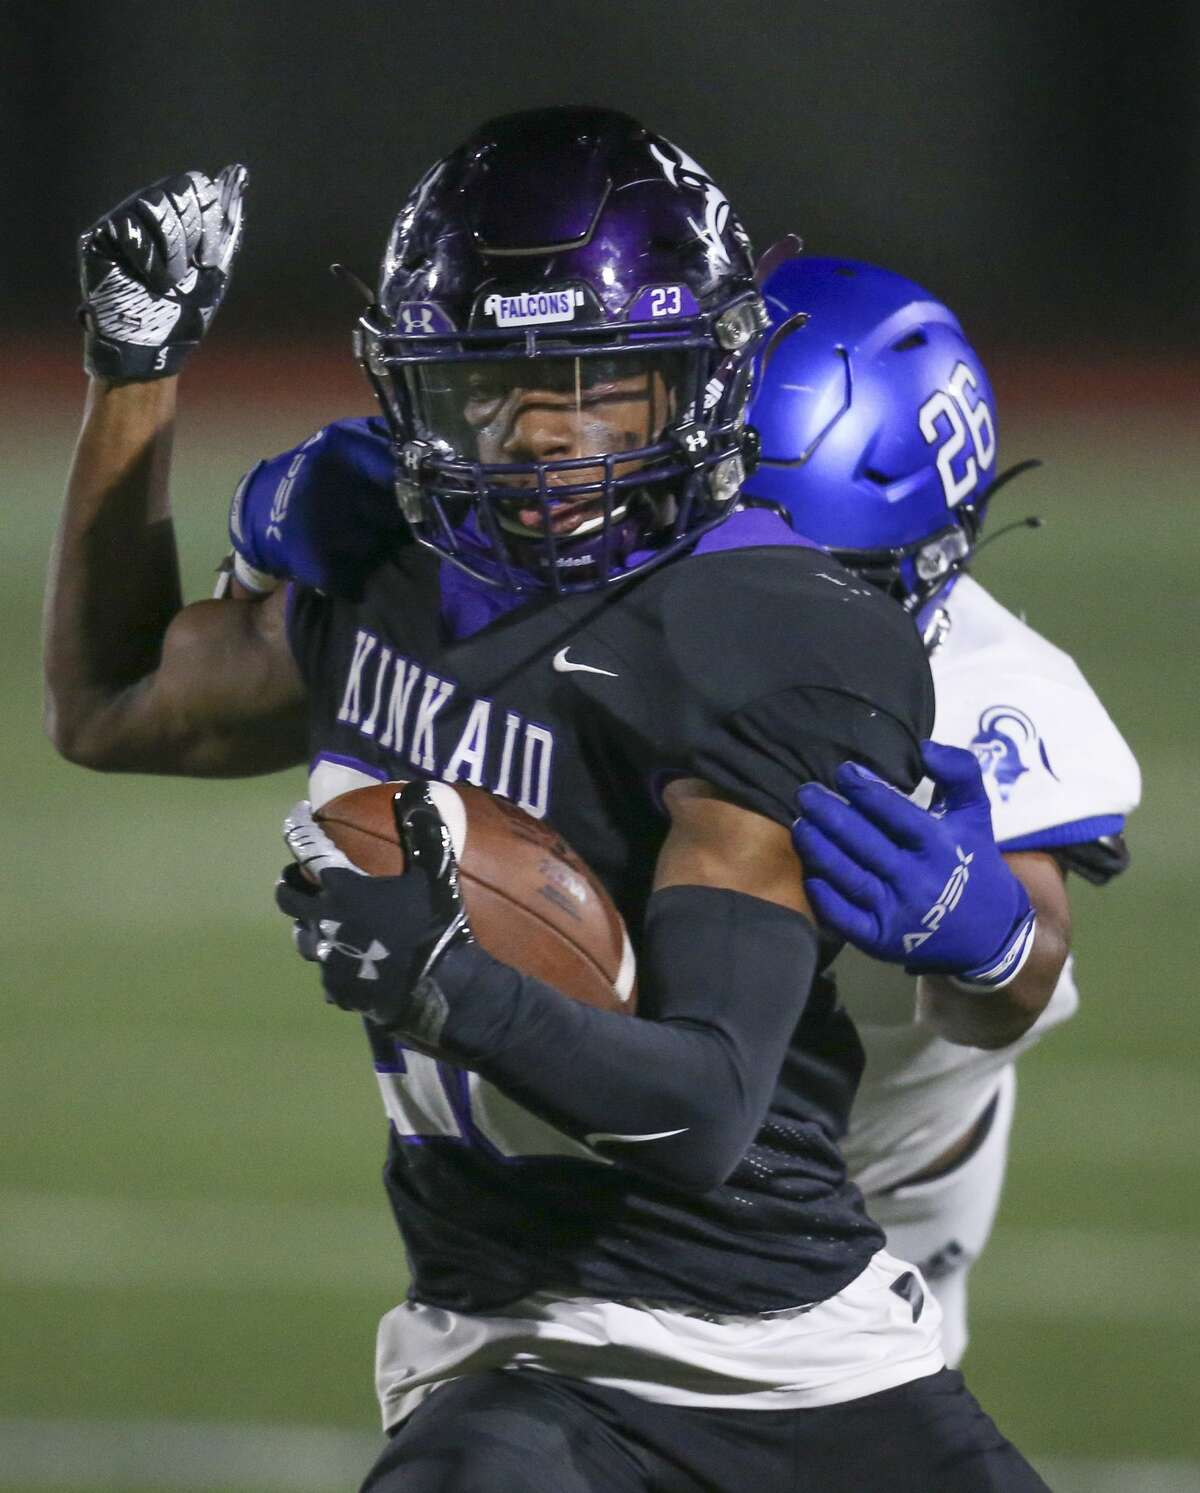 Kinkaid Falcons running back (23) drags Episcopal Knights defensive back Maurice Williams (26) in the first quarter in a division high school football game on November 6, 2020 at Segal Field at Barnard Stadium in Houston, TX.